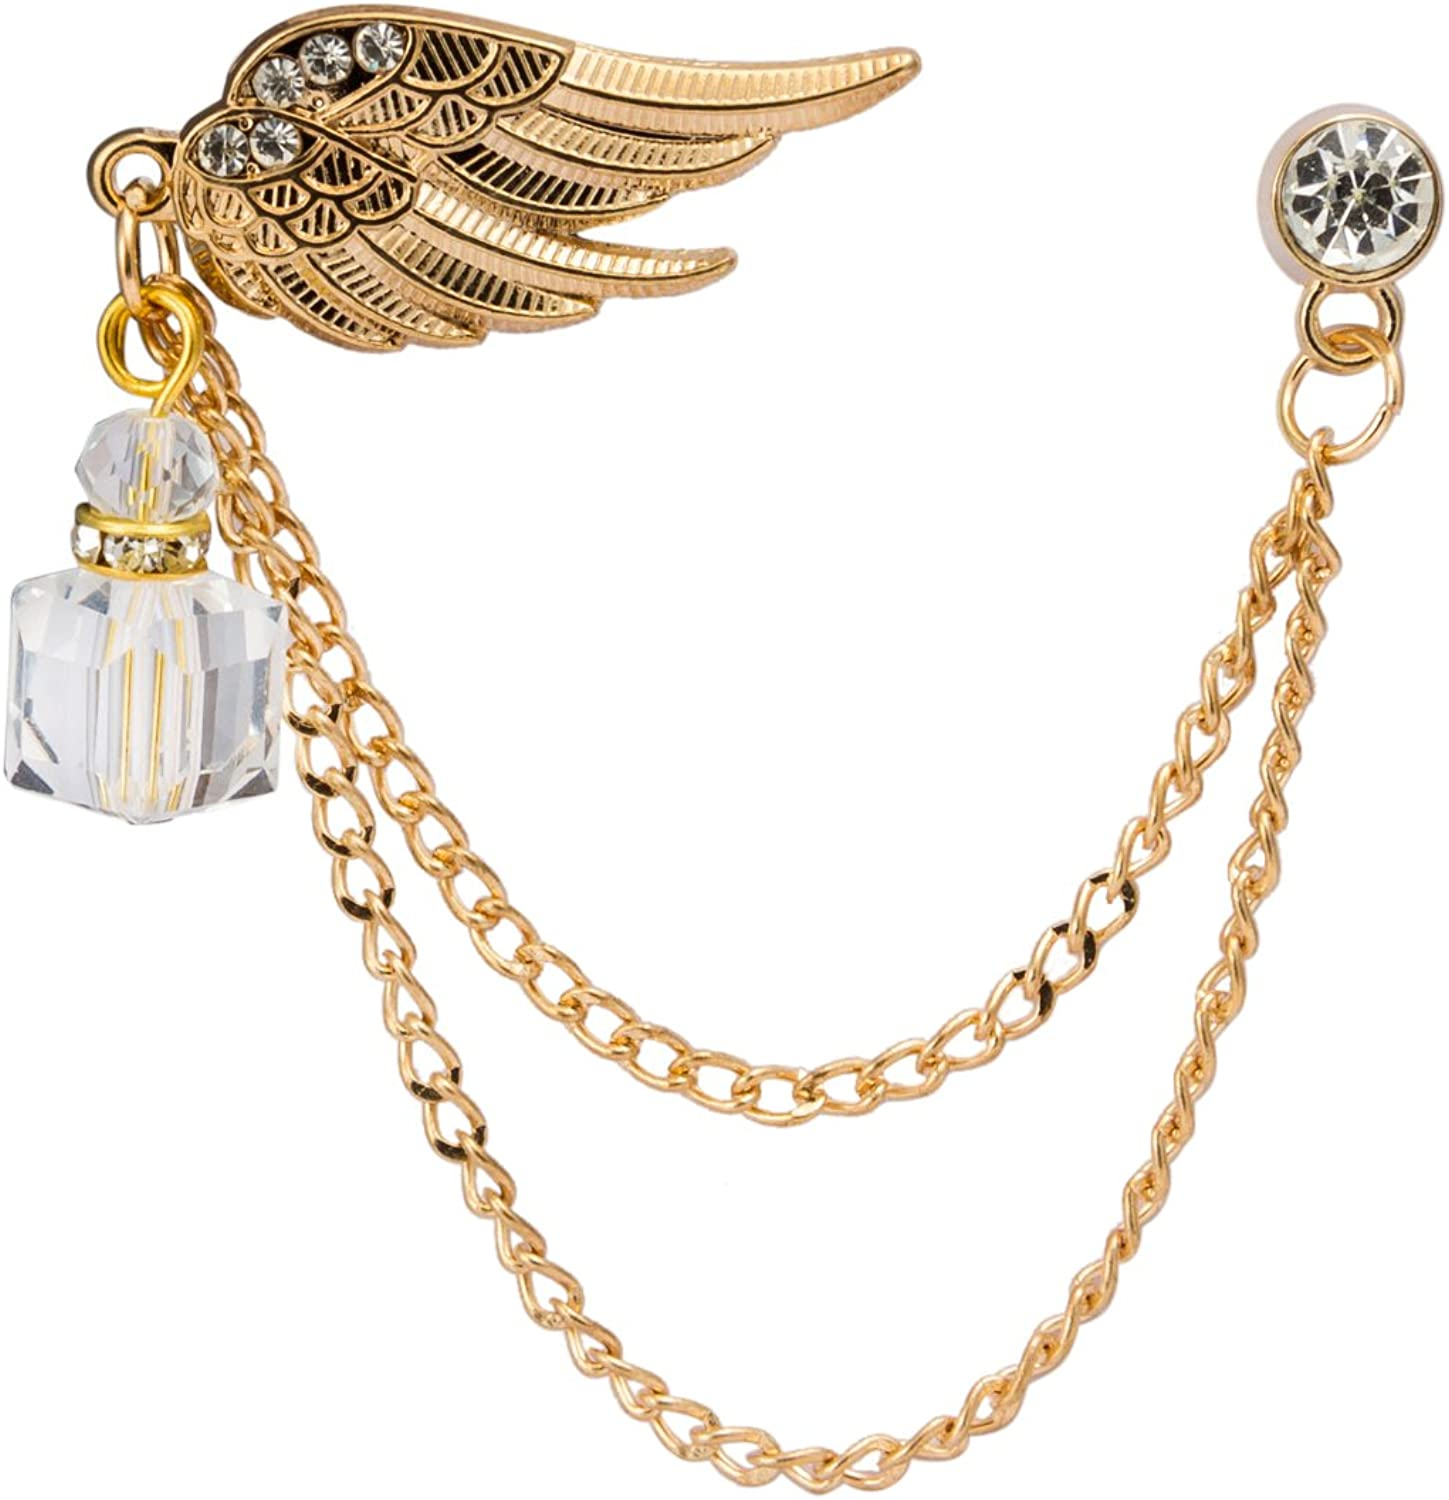 Knighthood Power Wing with Hanging Stone Collar Pin Golden Lapel Pin Badge Coat Suit Jacket Wedding Gift Party Shirt Collar Accessories Brooch for Men